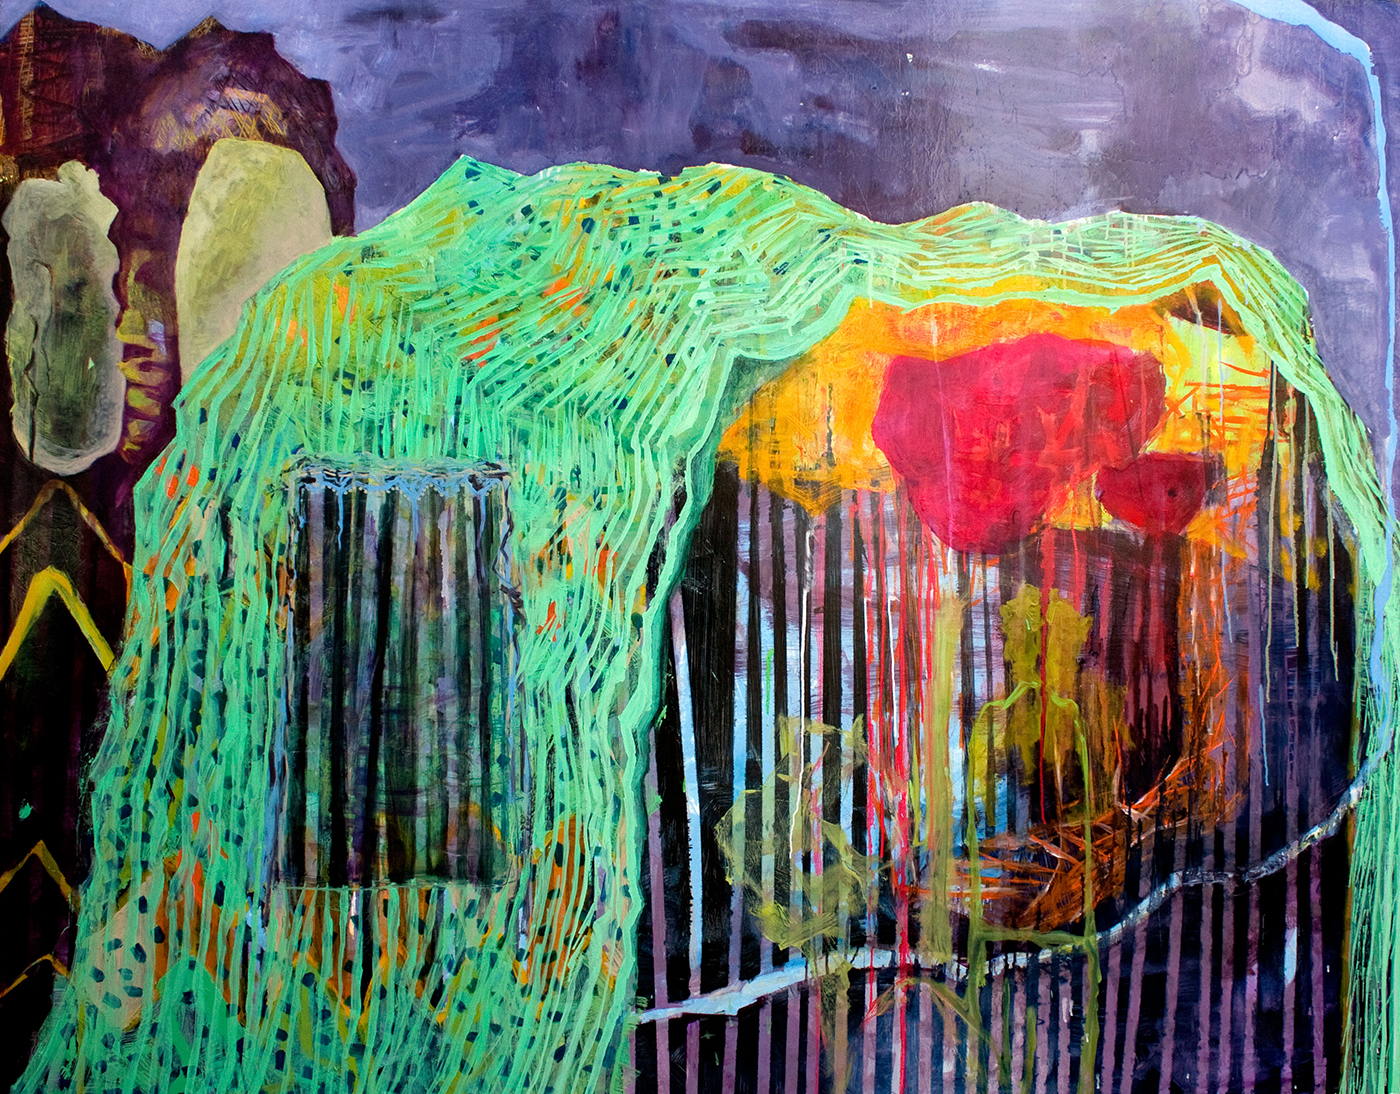 Tent / 2011, oil on canvas, 200 x 165 cm